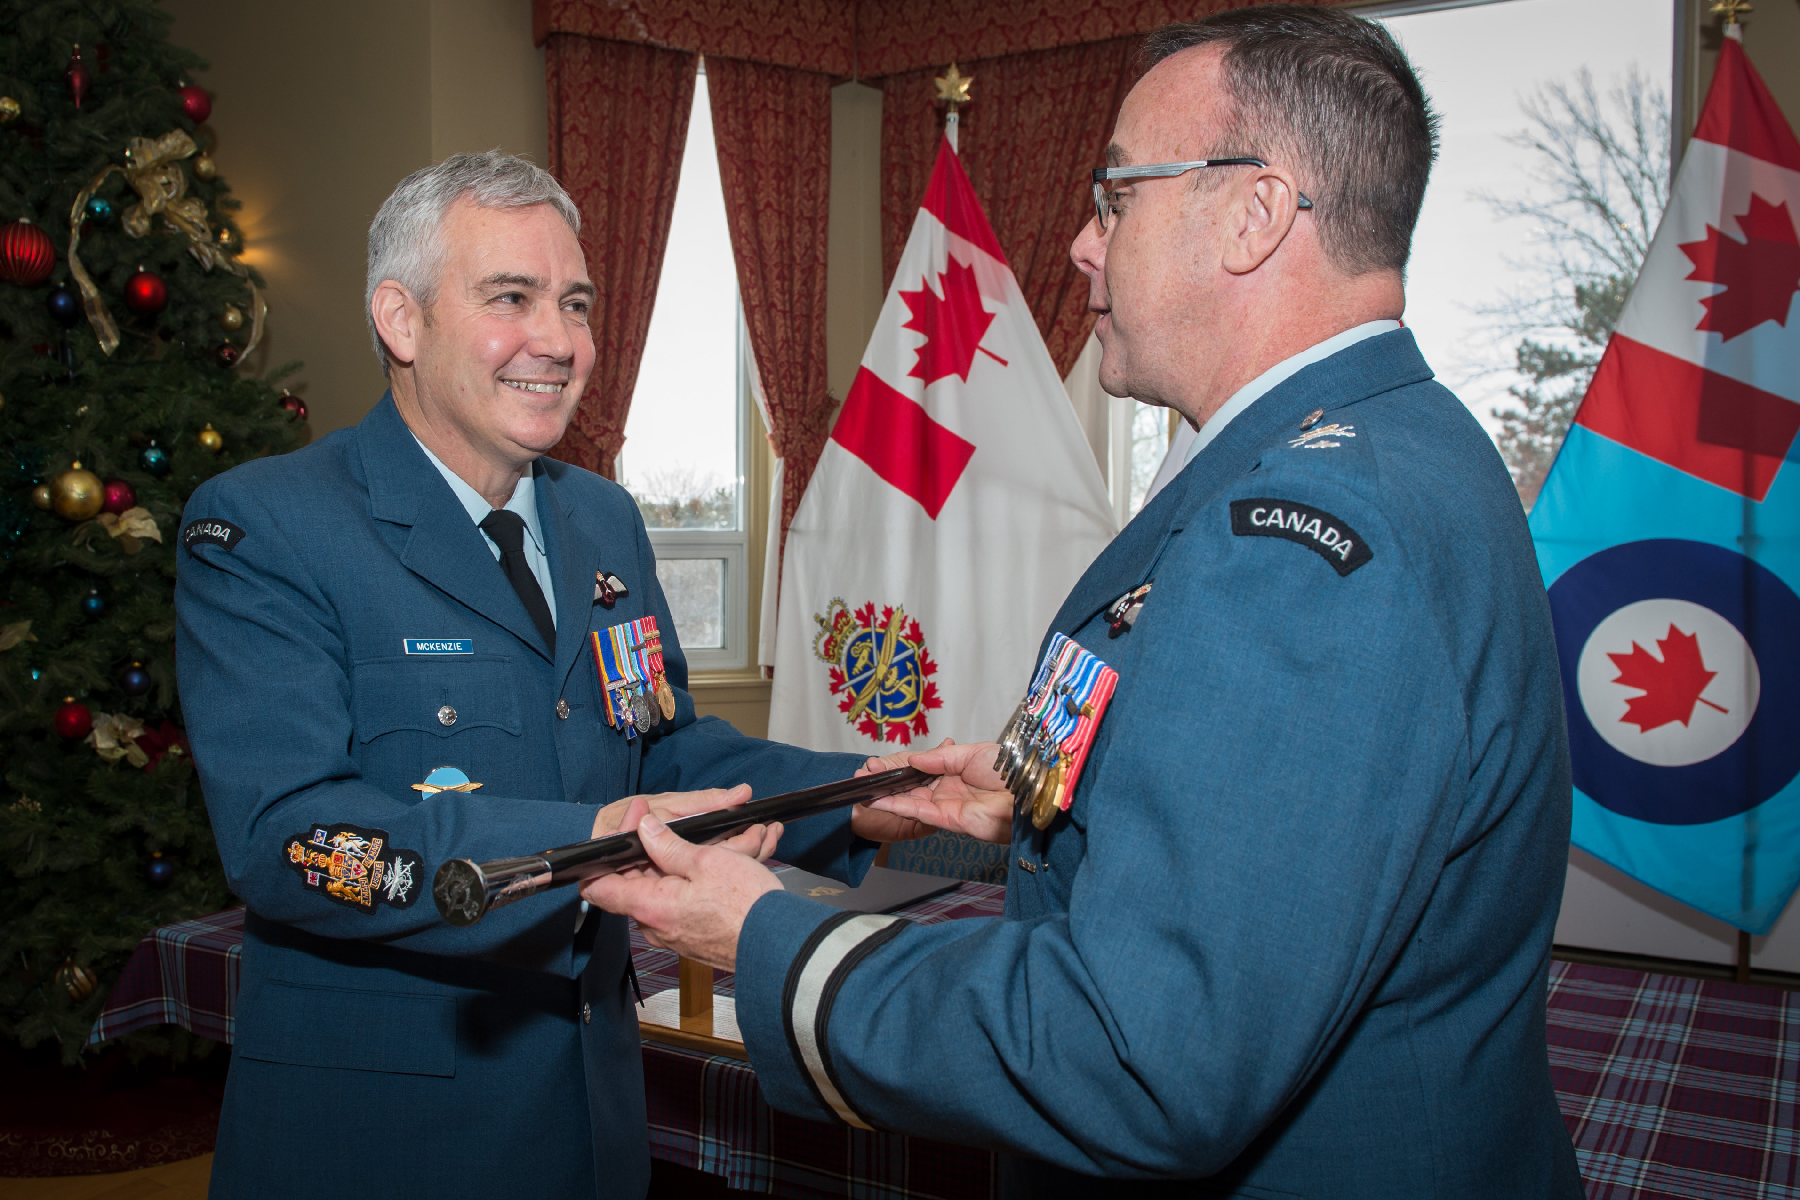 Brigadier-General Michael Rafter (right), Director General Air Reserve, presents to Chief Warrant Officer Jim McKenzie the RCAF Reserve Chief Warrant Officer pace stick. Traditionally, the pace stick is used in ceremonial drill and, as a symbol, represents the bearer's appointment and authority. PHOTO: Corporal Kenneth Beliwicz